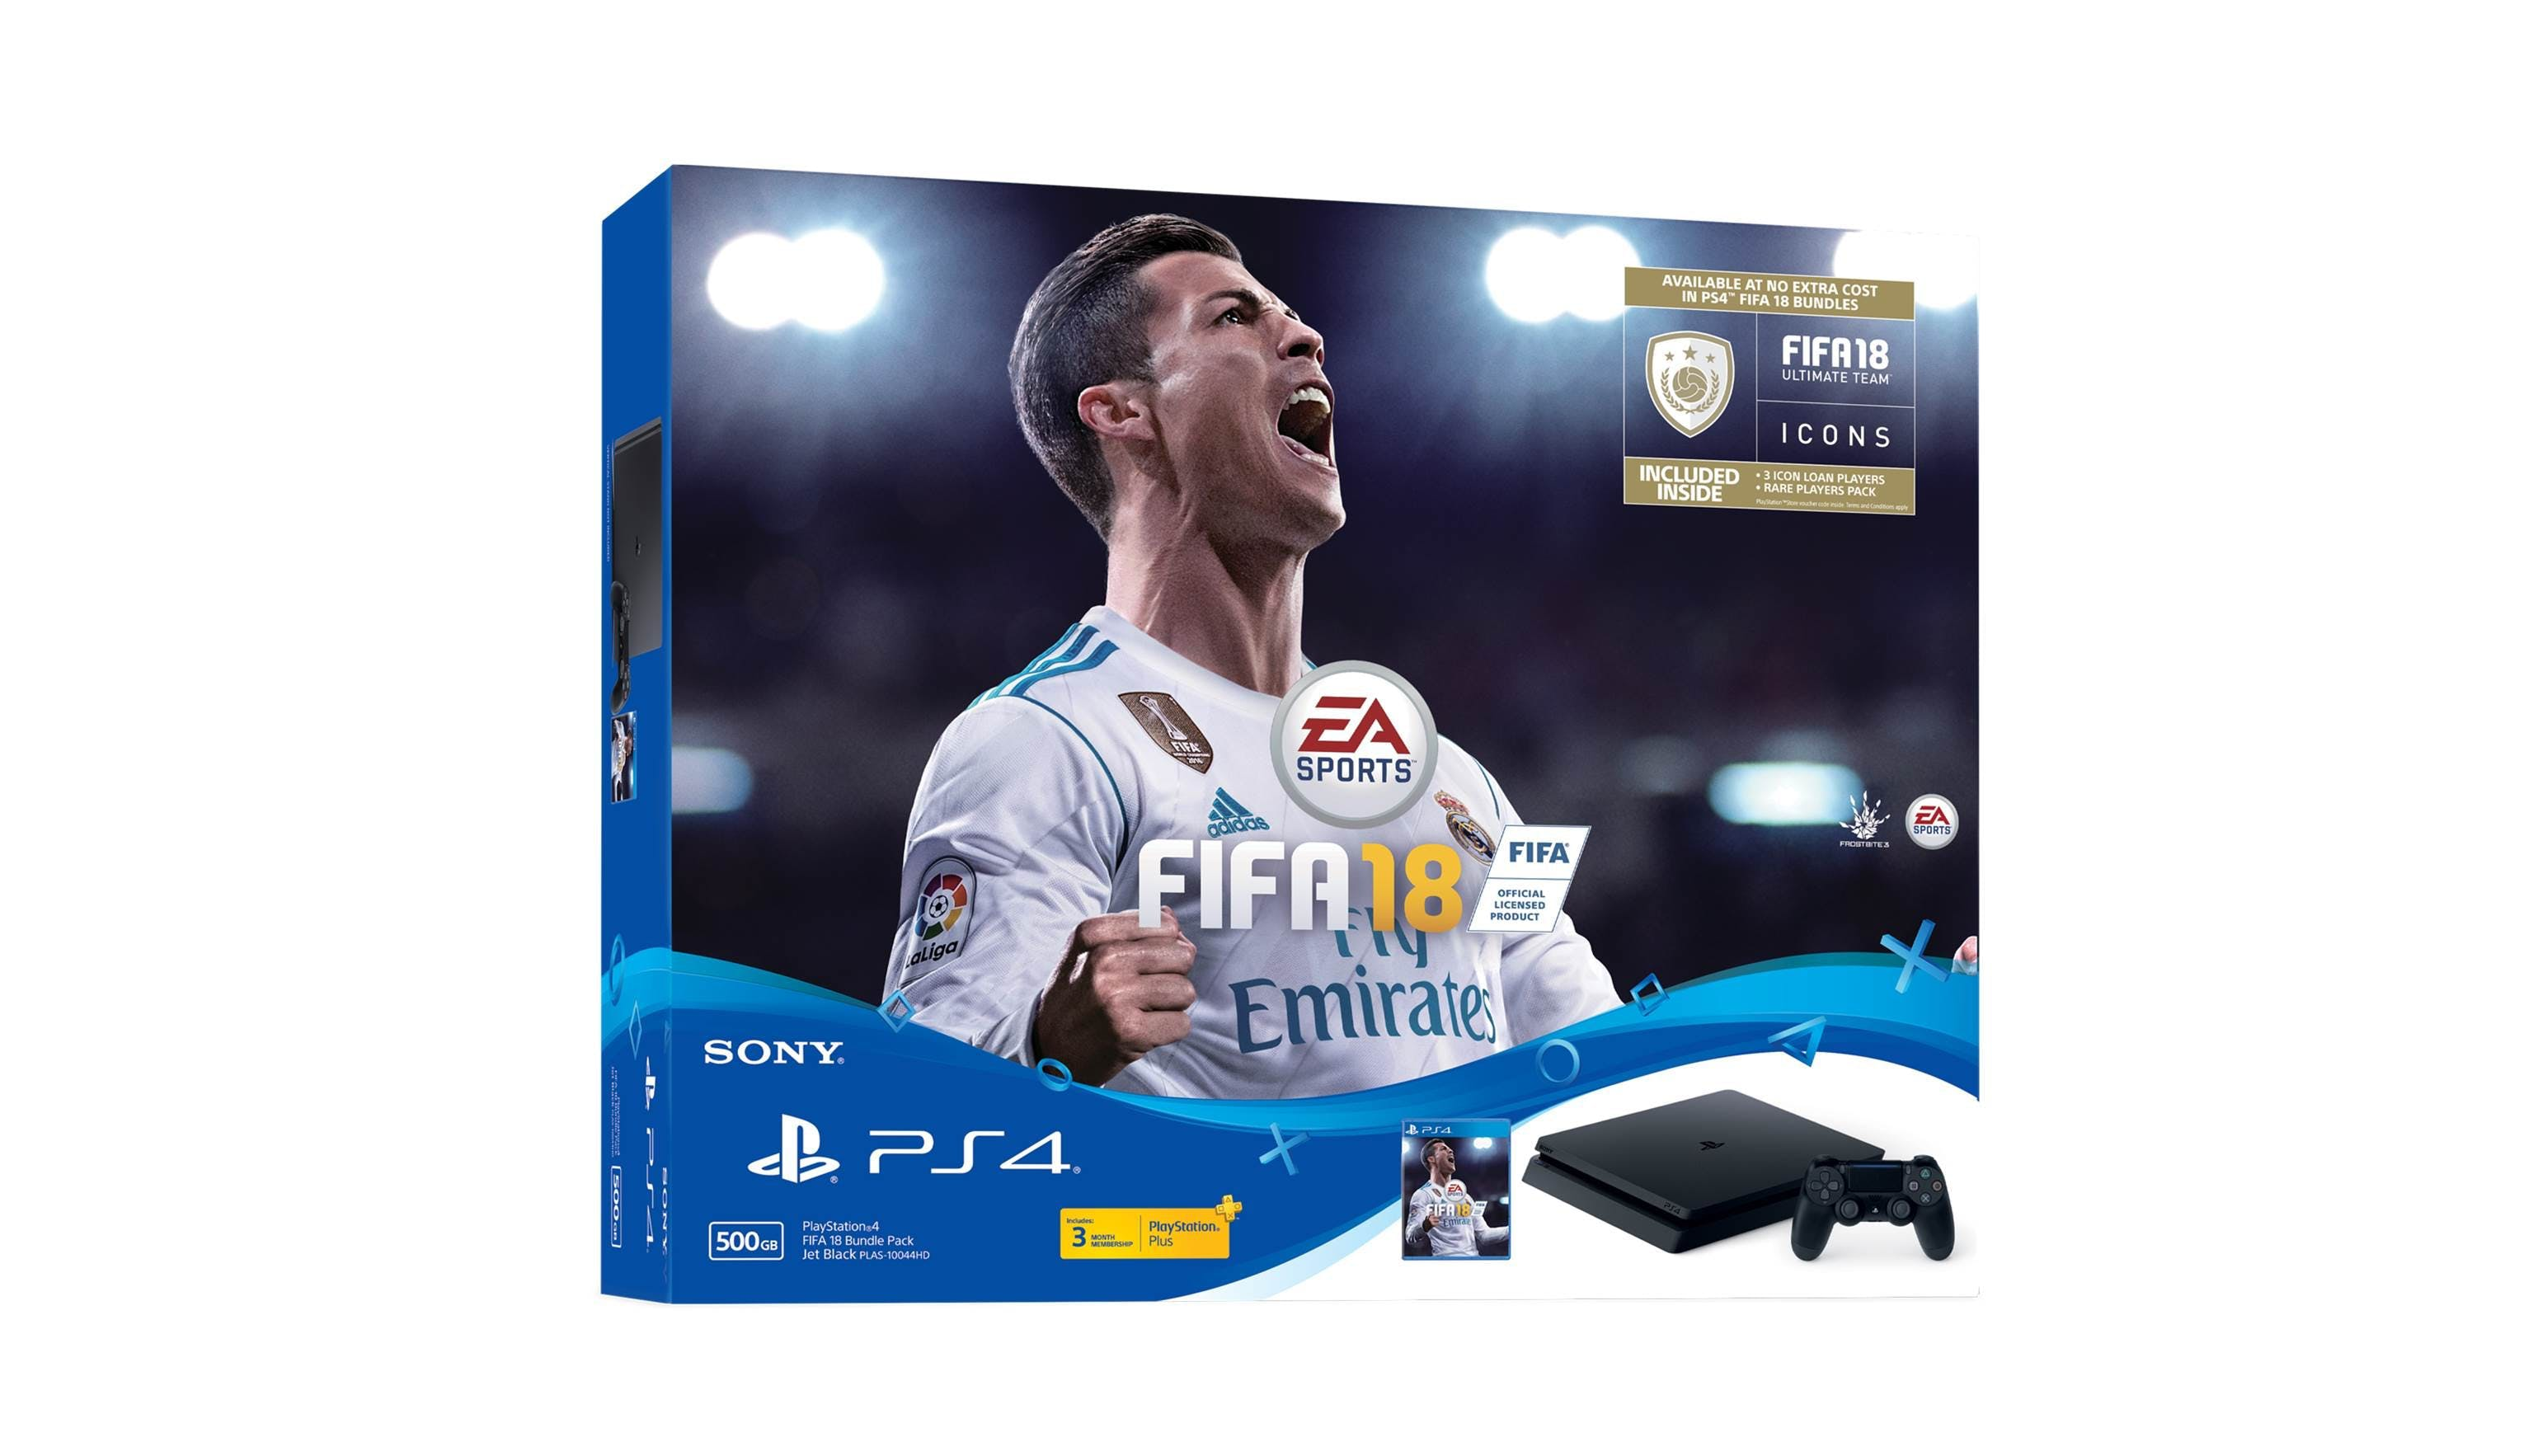 Sony Playstation 4 500gb Console Fifa 18 Bundle Harvey Norman Malaysia Ps4 Kamera